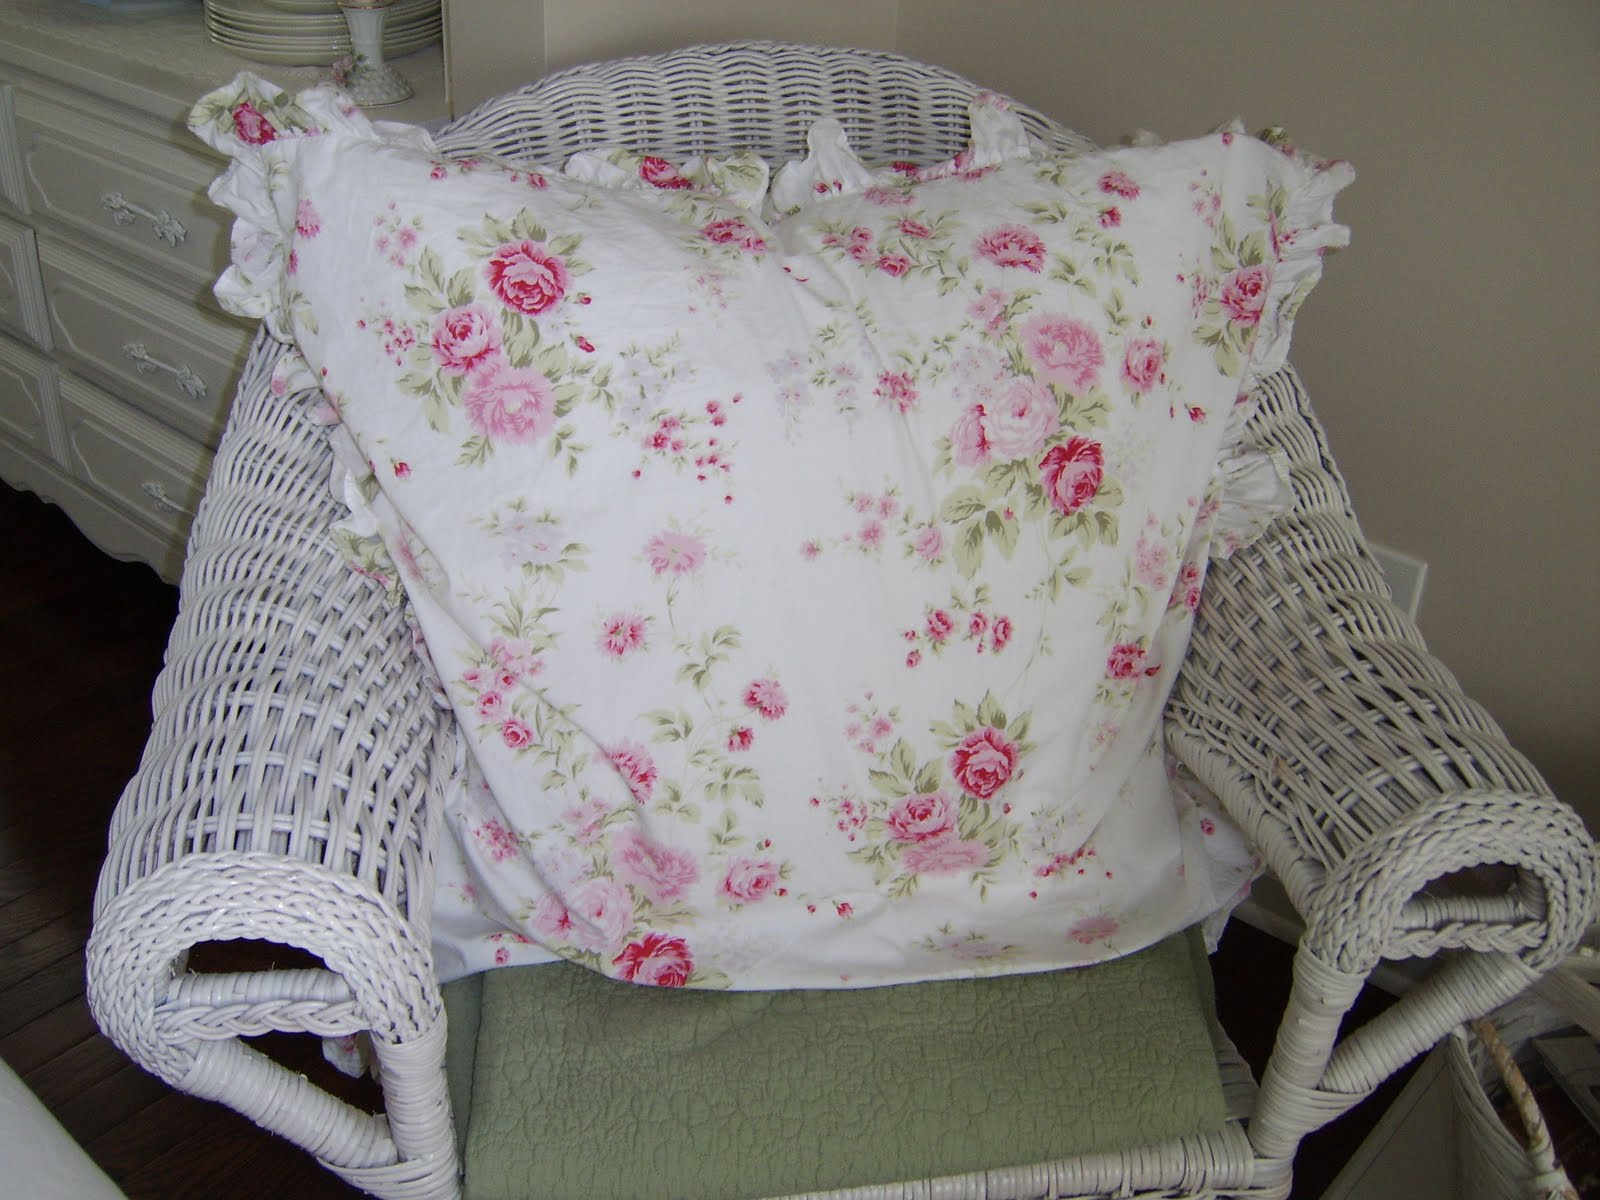 Shabby Chic Bed Pillows : Anything Shabby Chic: My Authentic Shabby Chic pillows